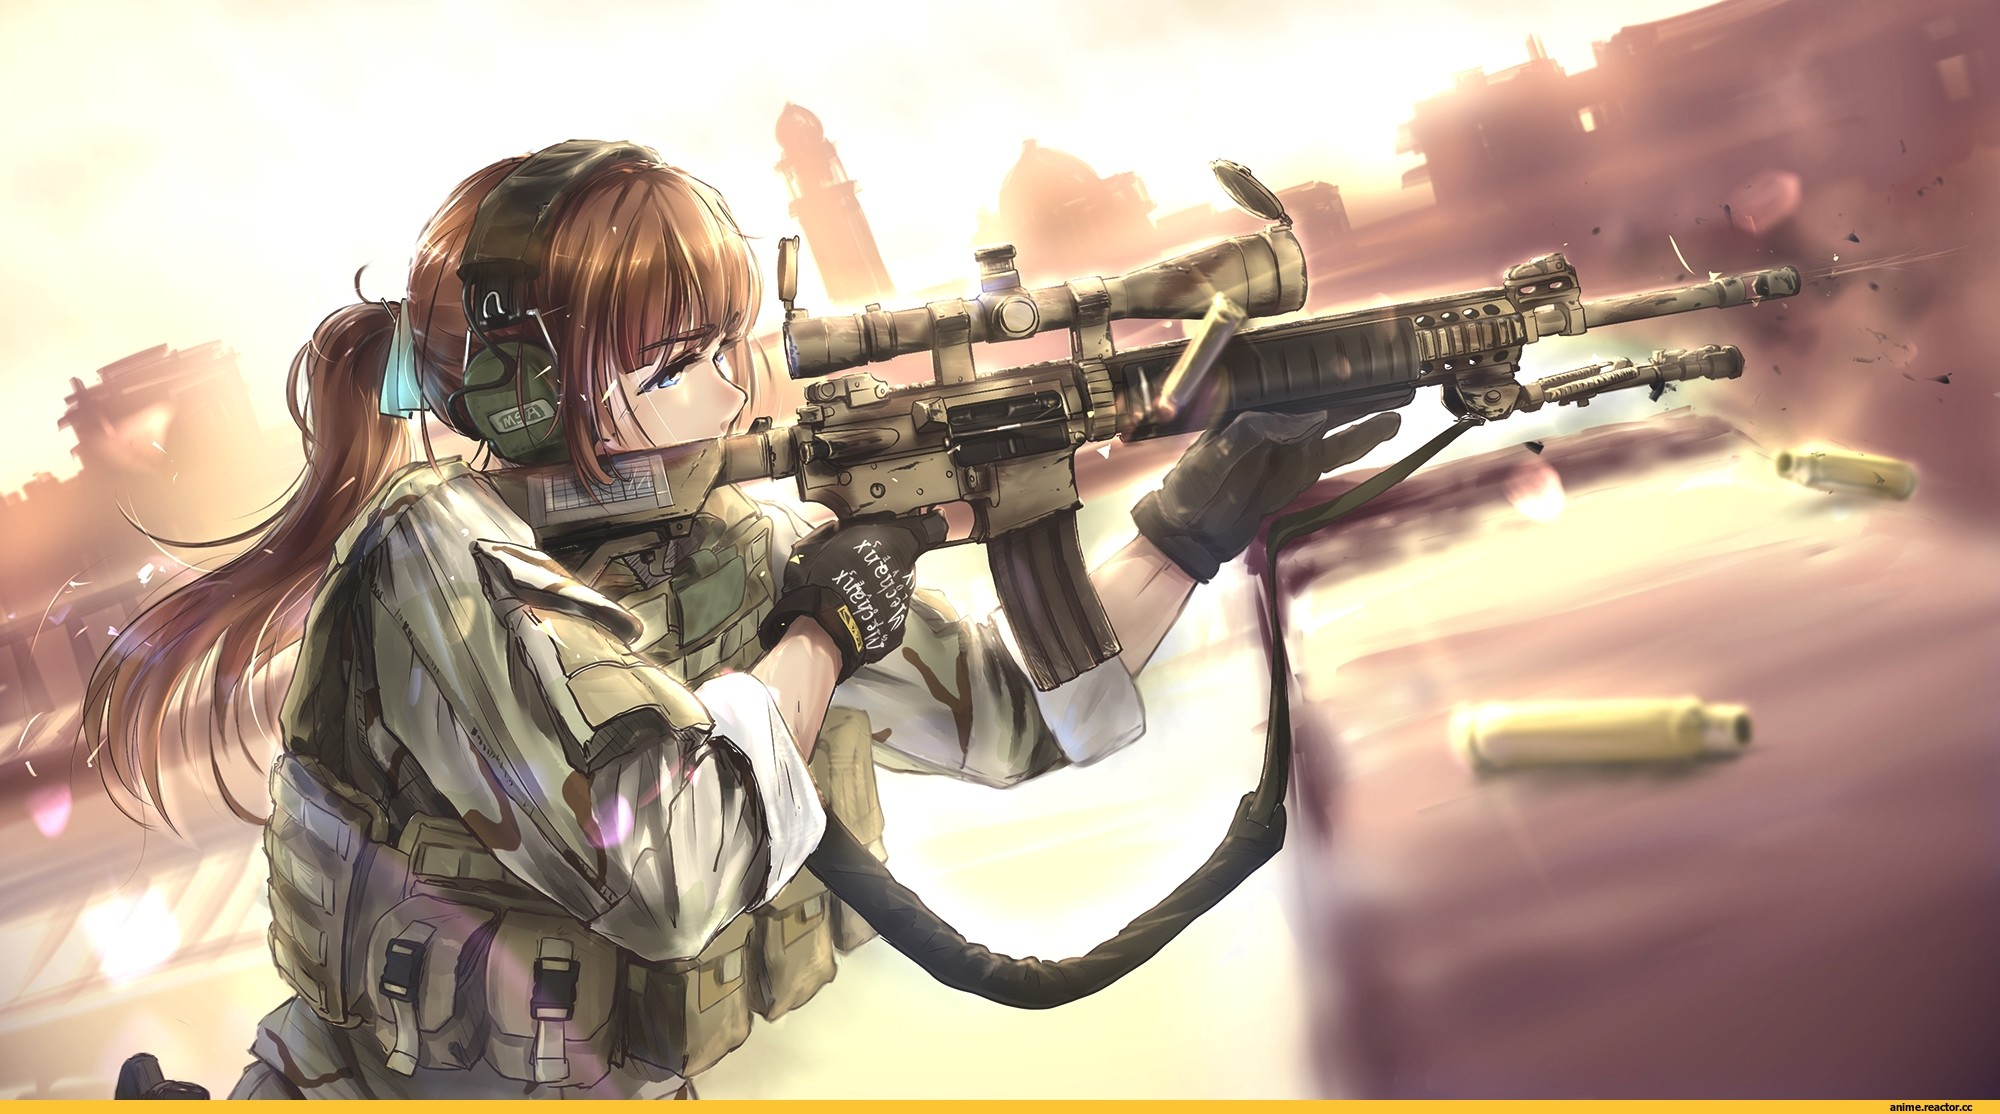 2000x1114, New Anime Army Girl Wallpaper Download - Nightcore You Re Gonna Know My Name - HD Wallpaper